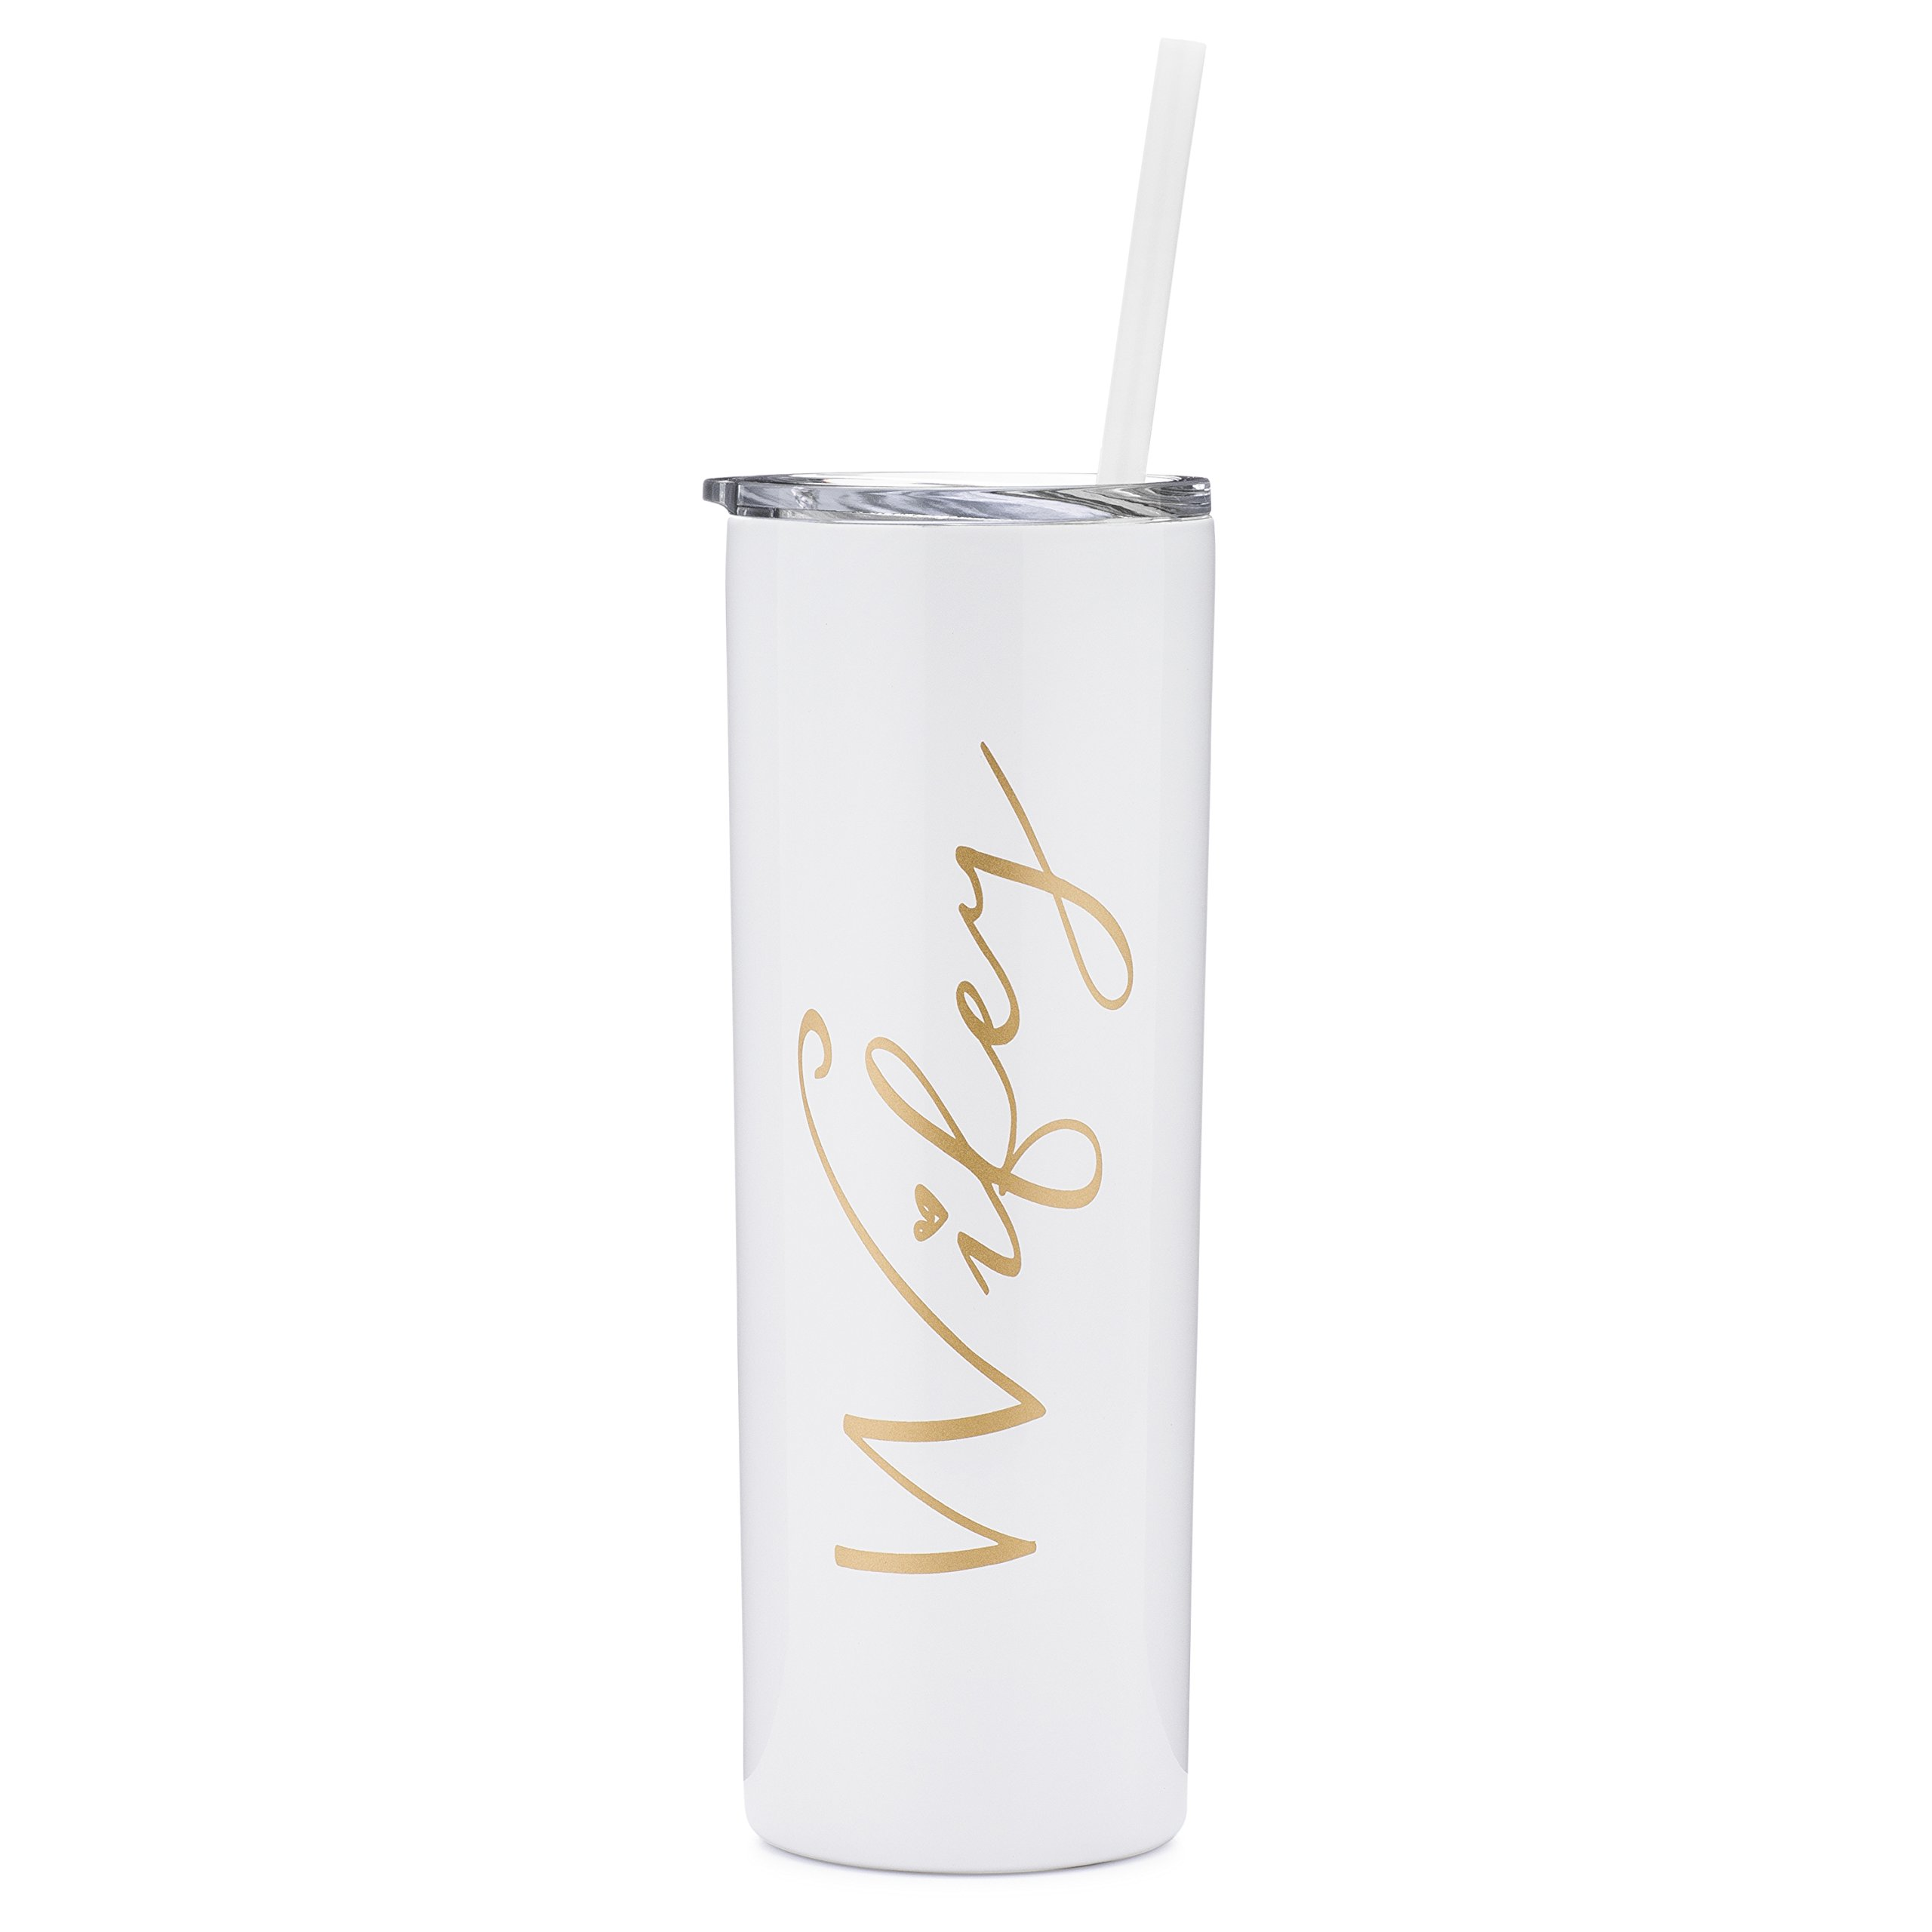 Wifey - 20 oz Stainless Steel Skinny Tumbler (White and Gold)